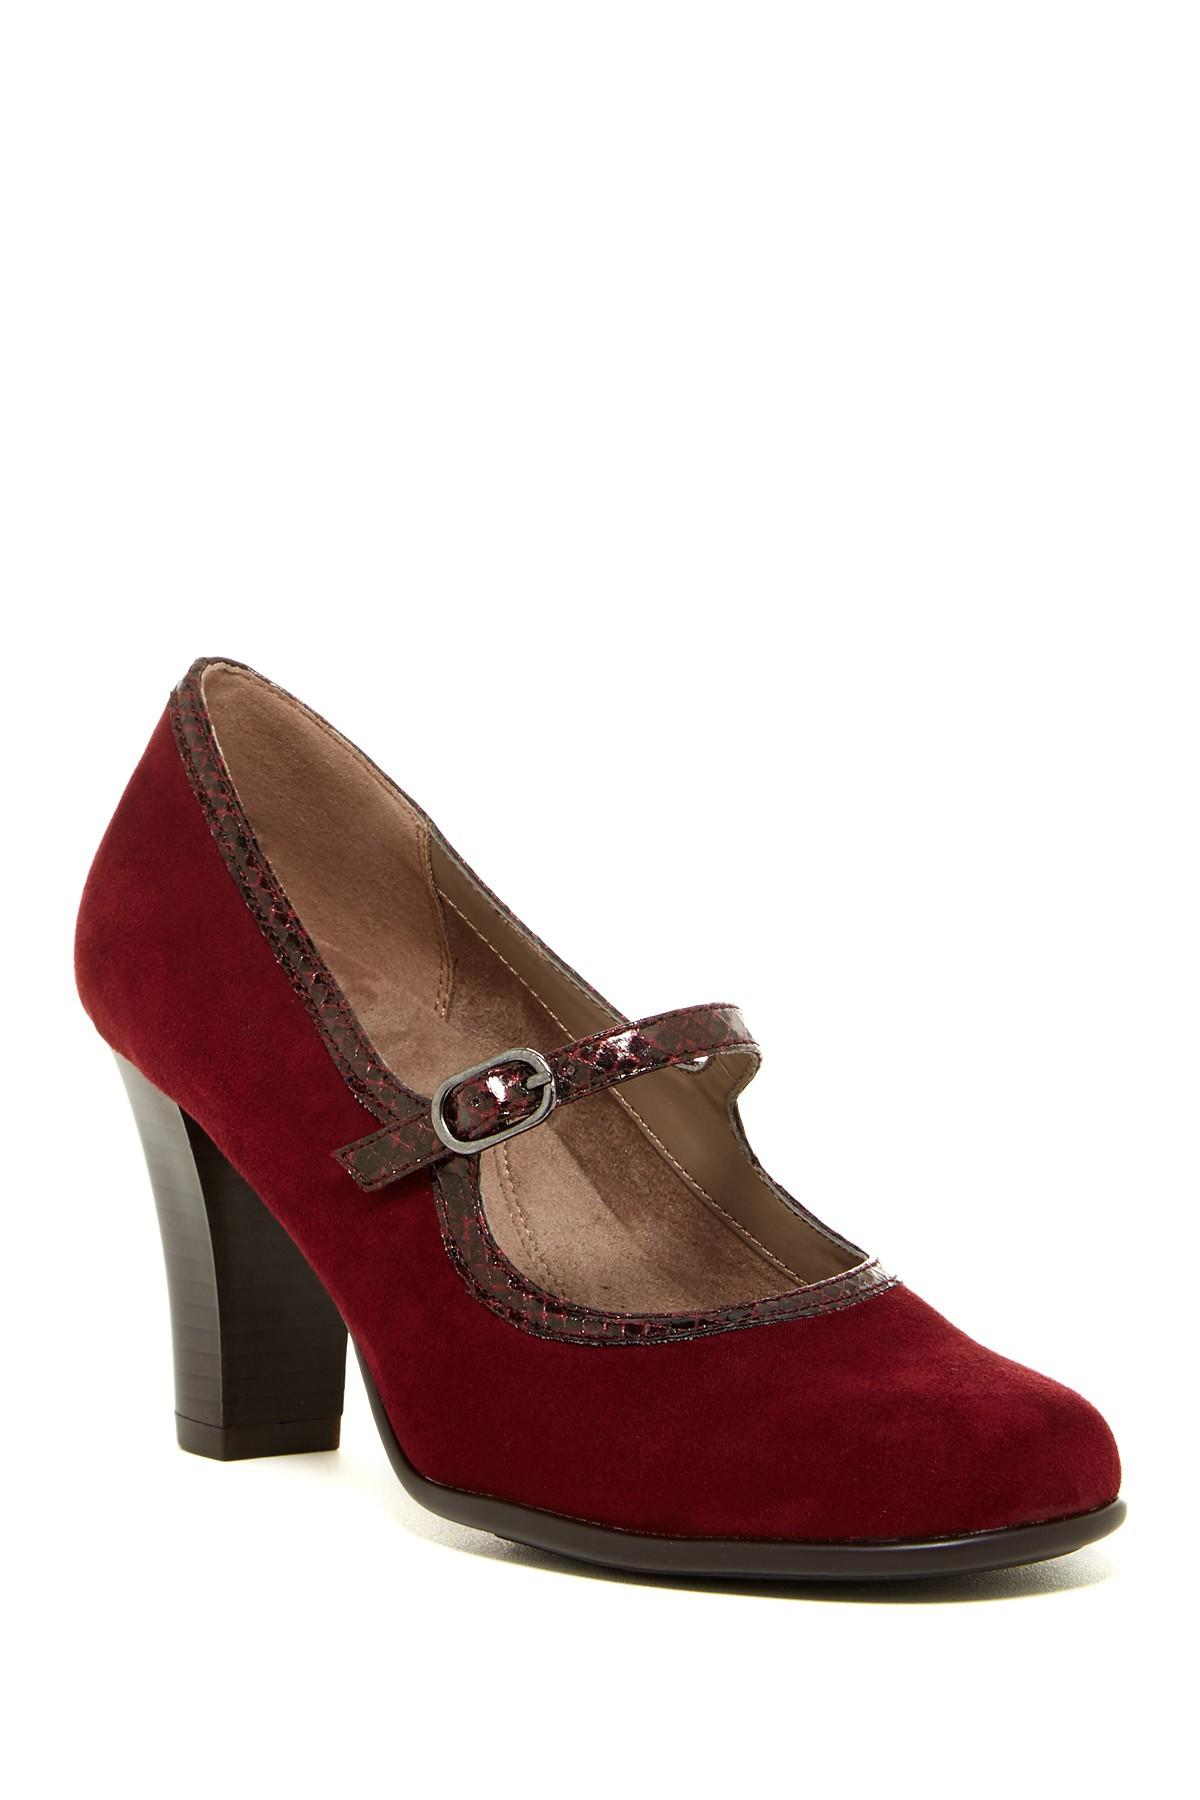 Aerosoles Red Mary Jane Shoes